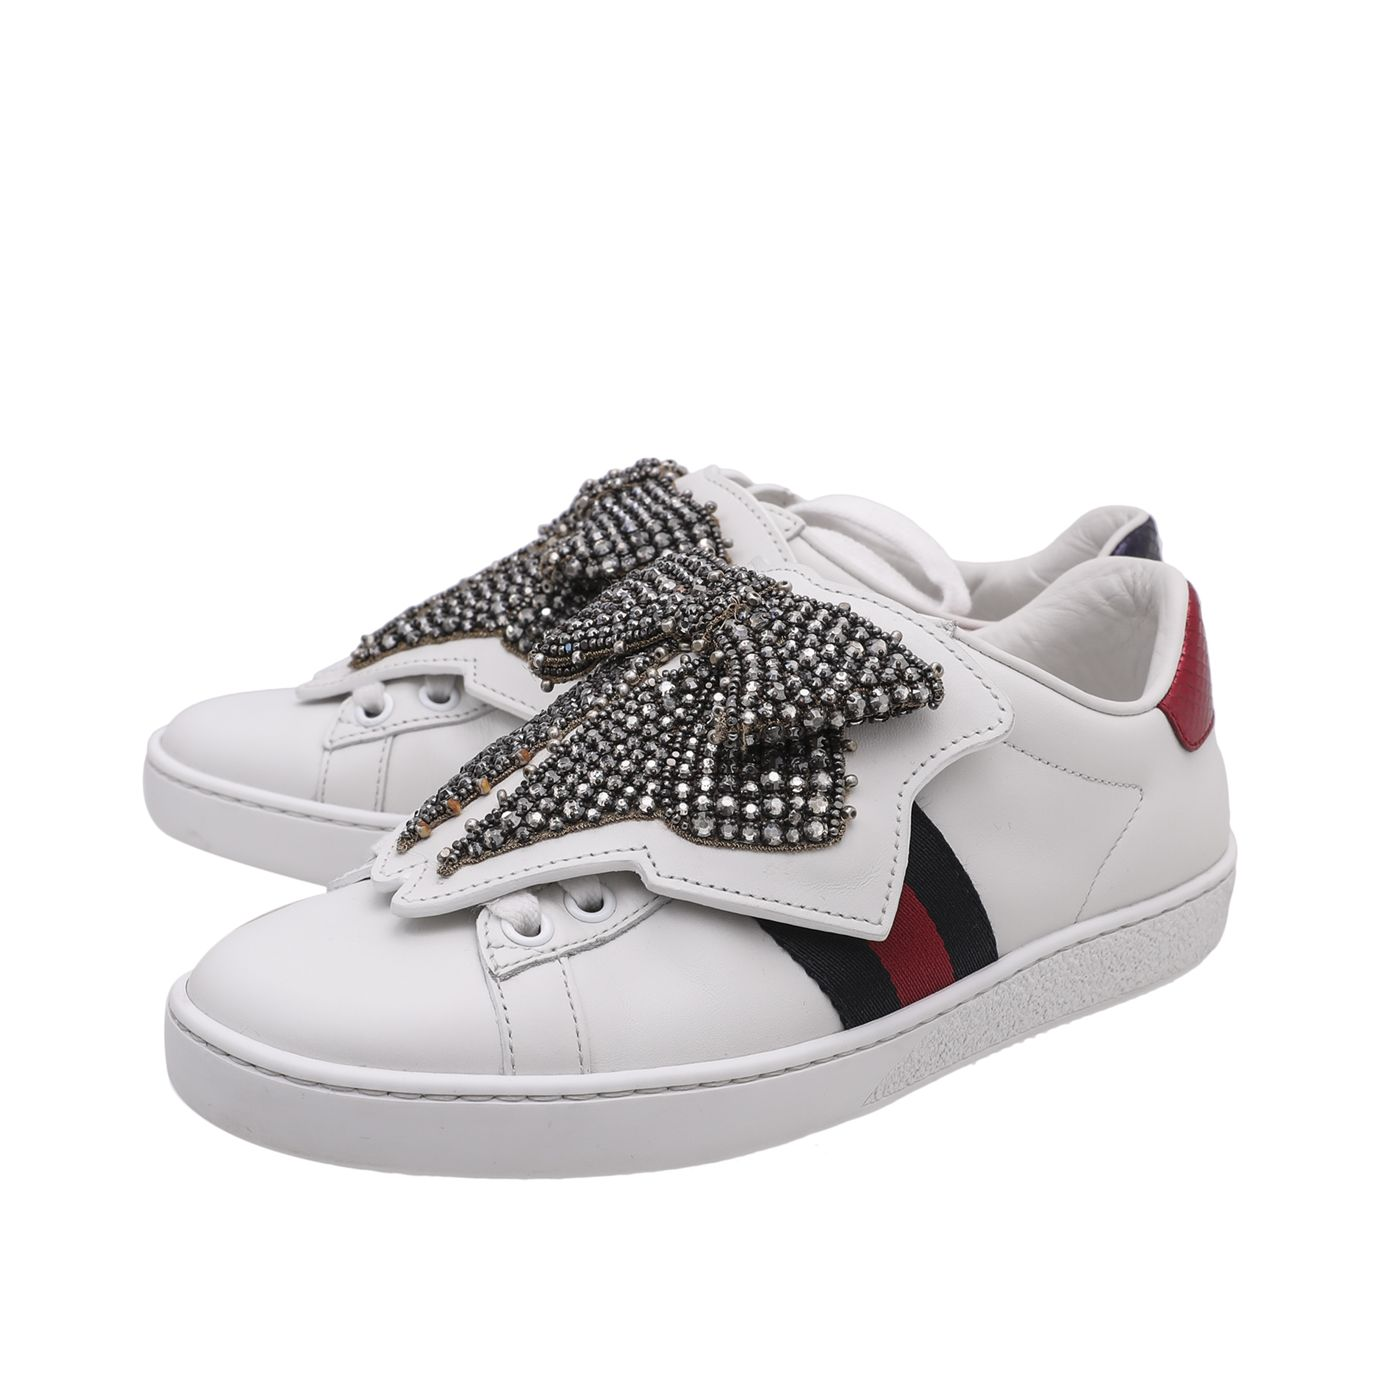 Gucci Tricolor Ace Removable Crystal Bow Sneaker 34.5